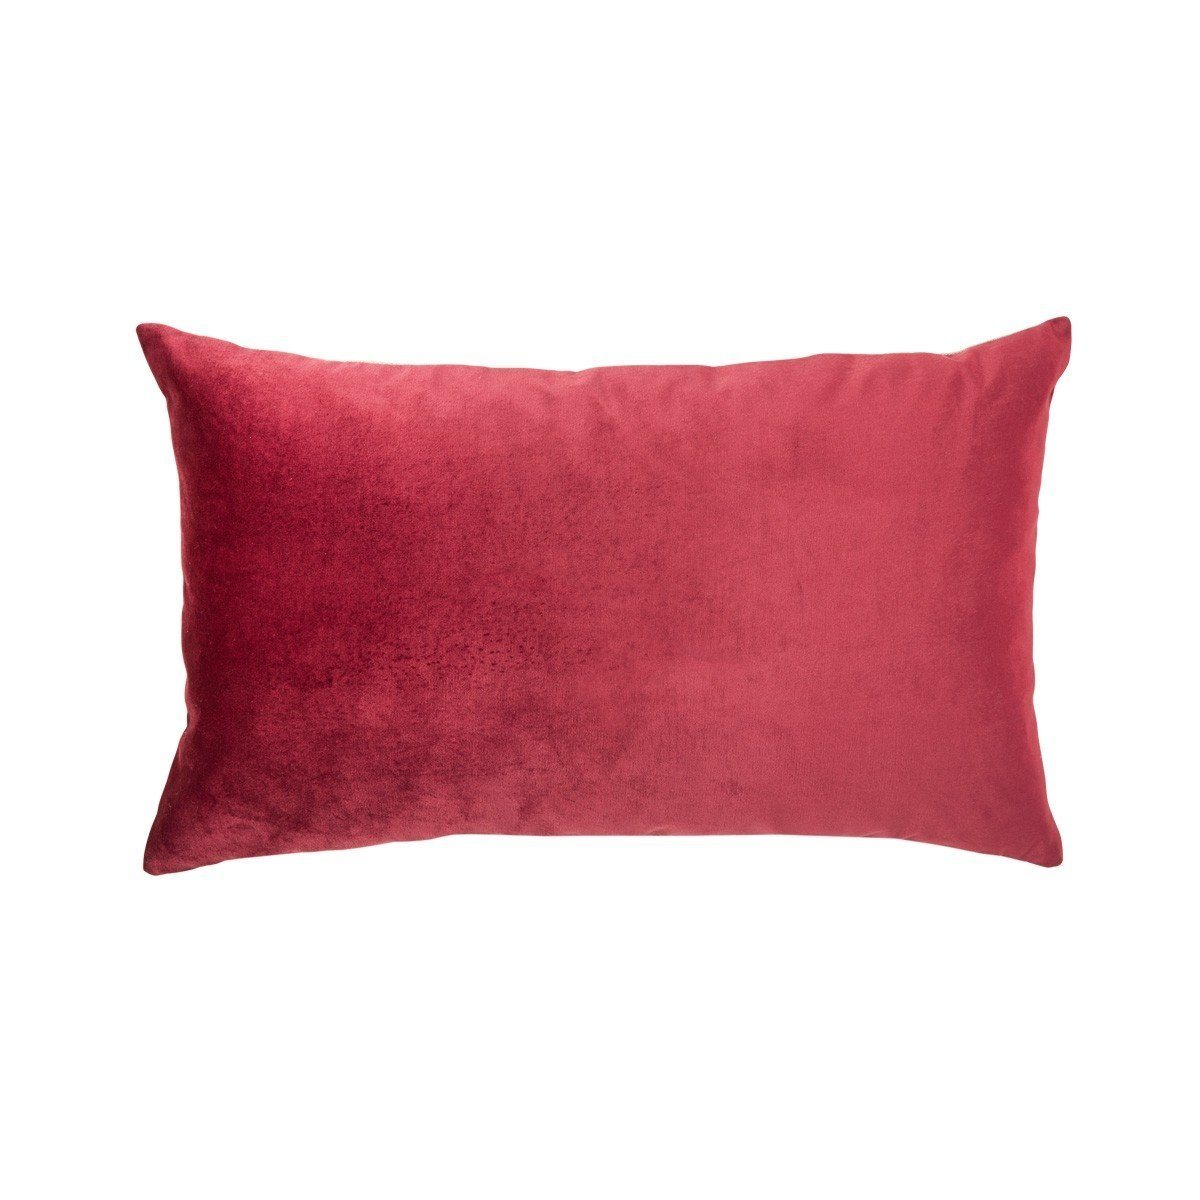 Berlingot Lumbar Decorative Throw Pillows by Iosis Fig Linens Medoc Red